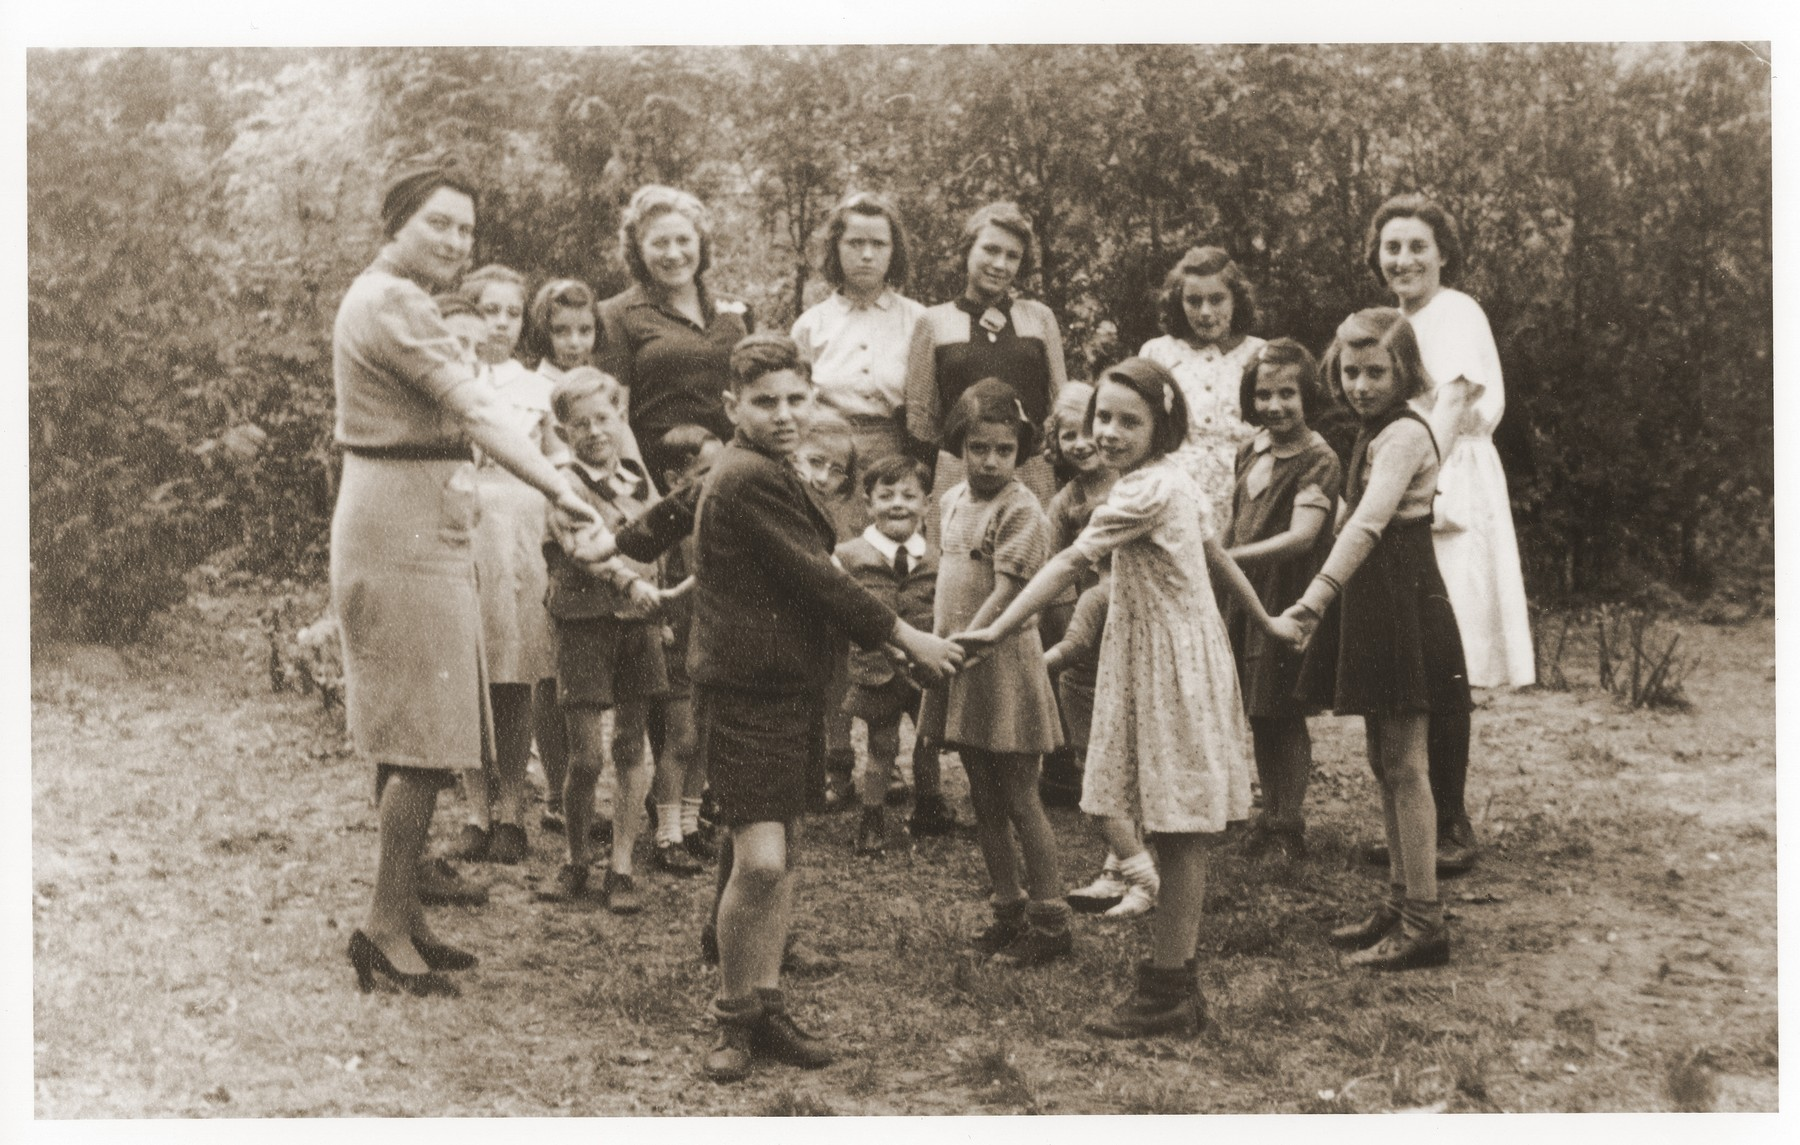 Children and teachers pose in a circle in the yard of the Lueneburg children's home.